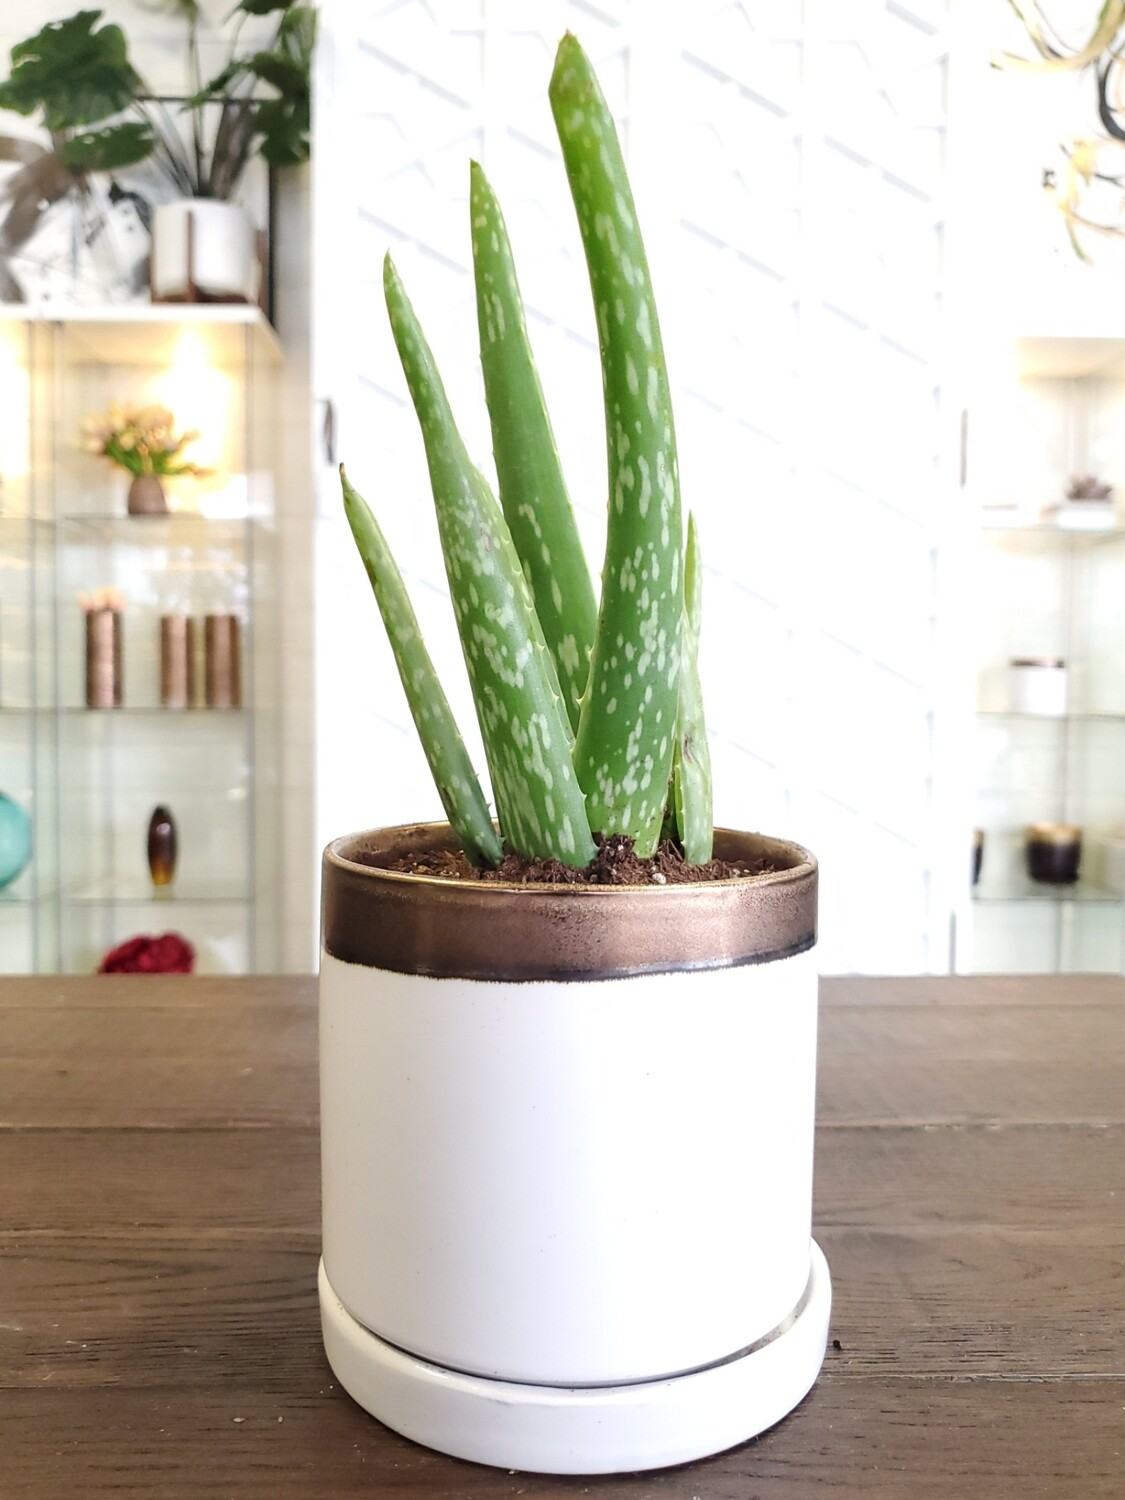 Big Minute Potted Aloe Plant